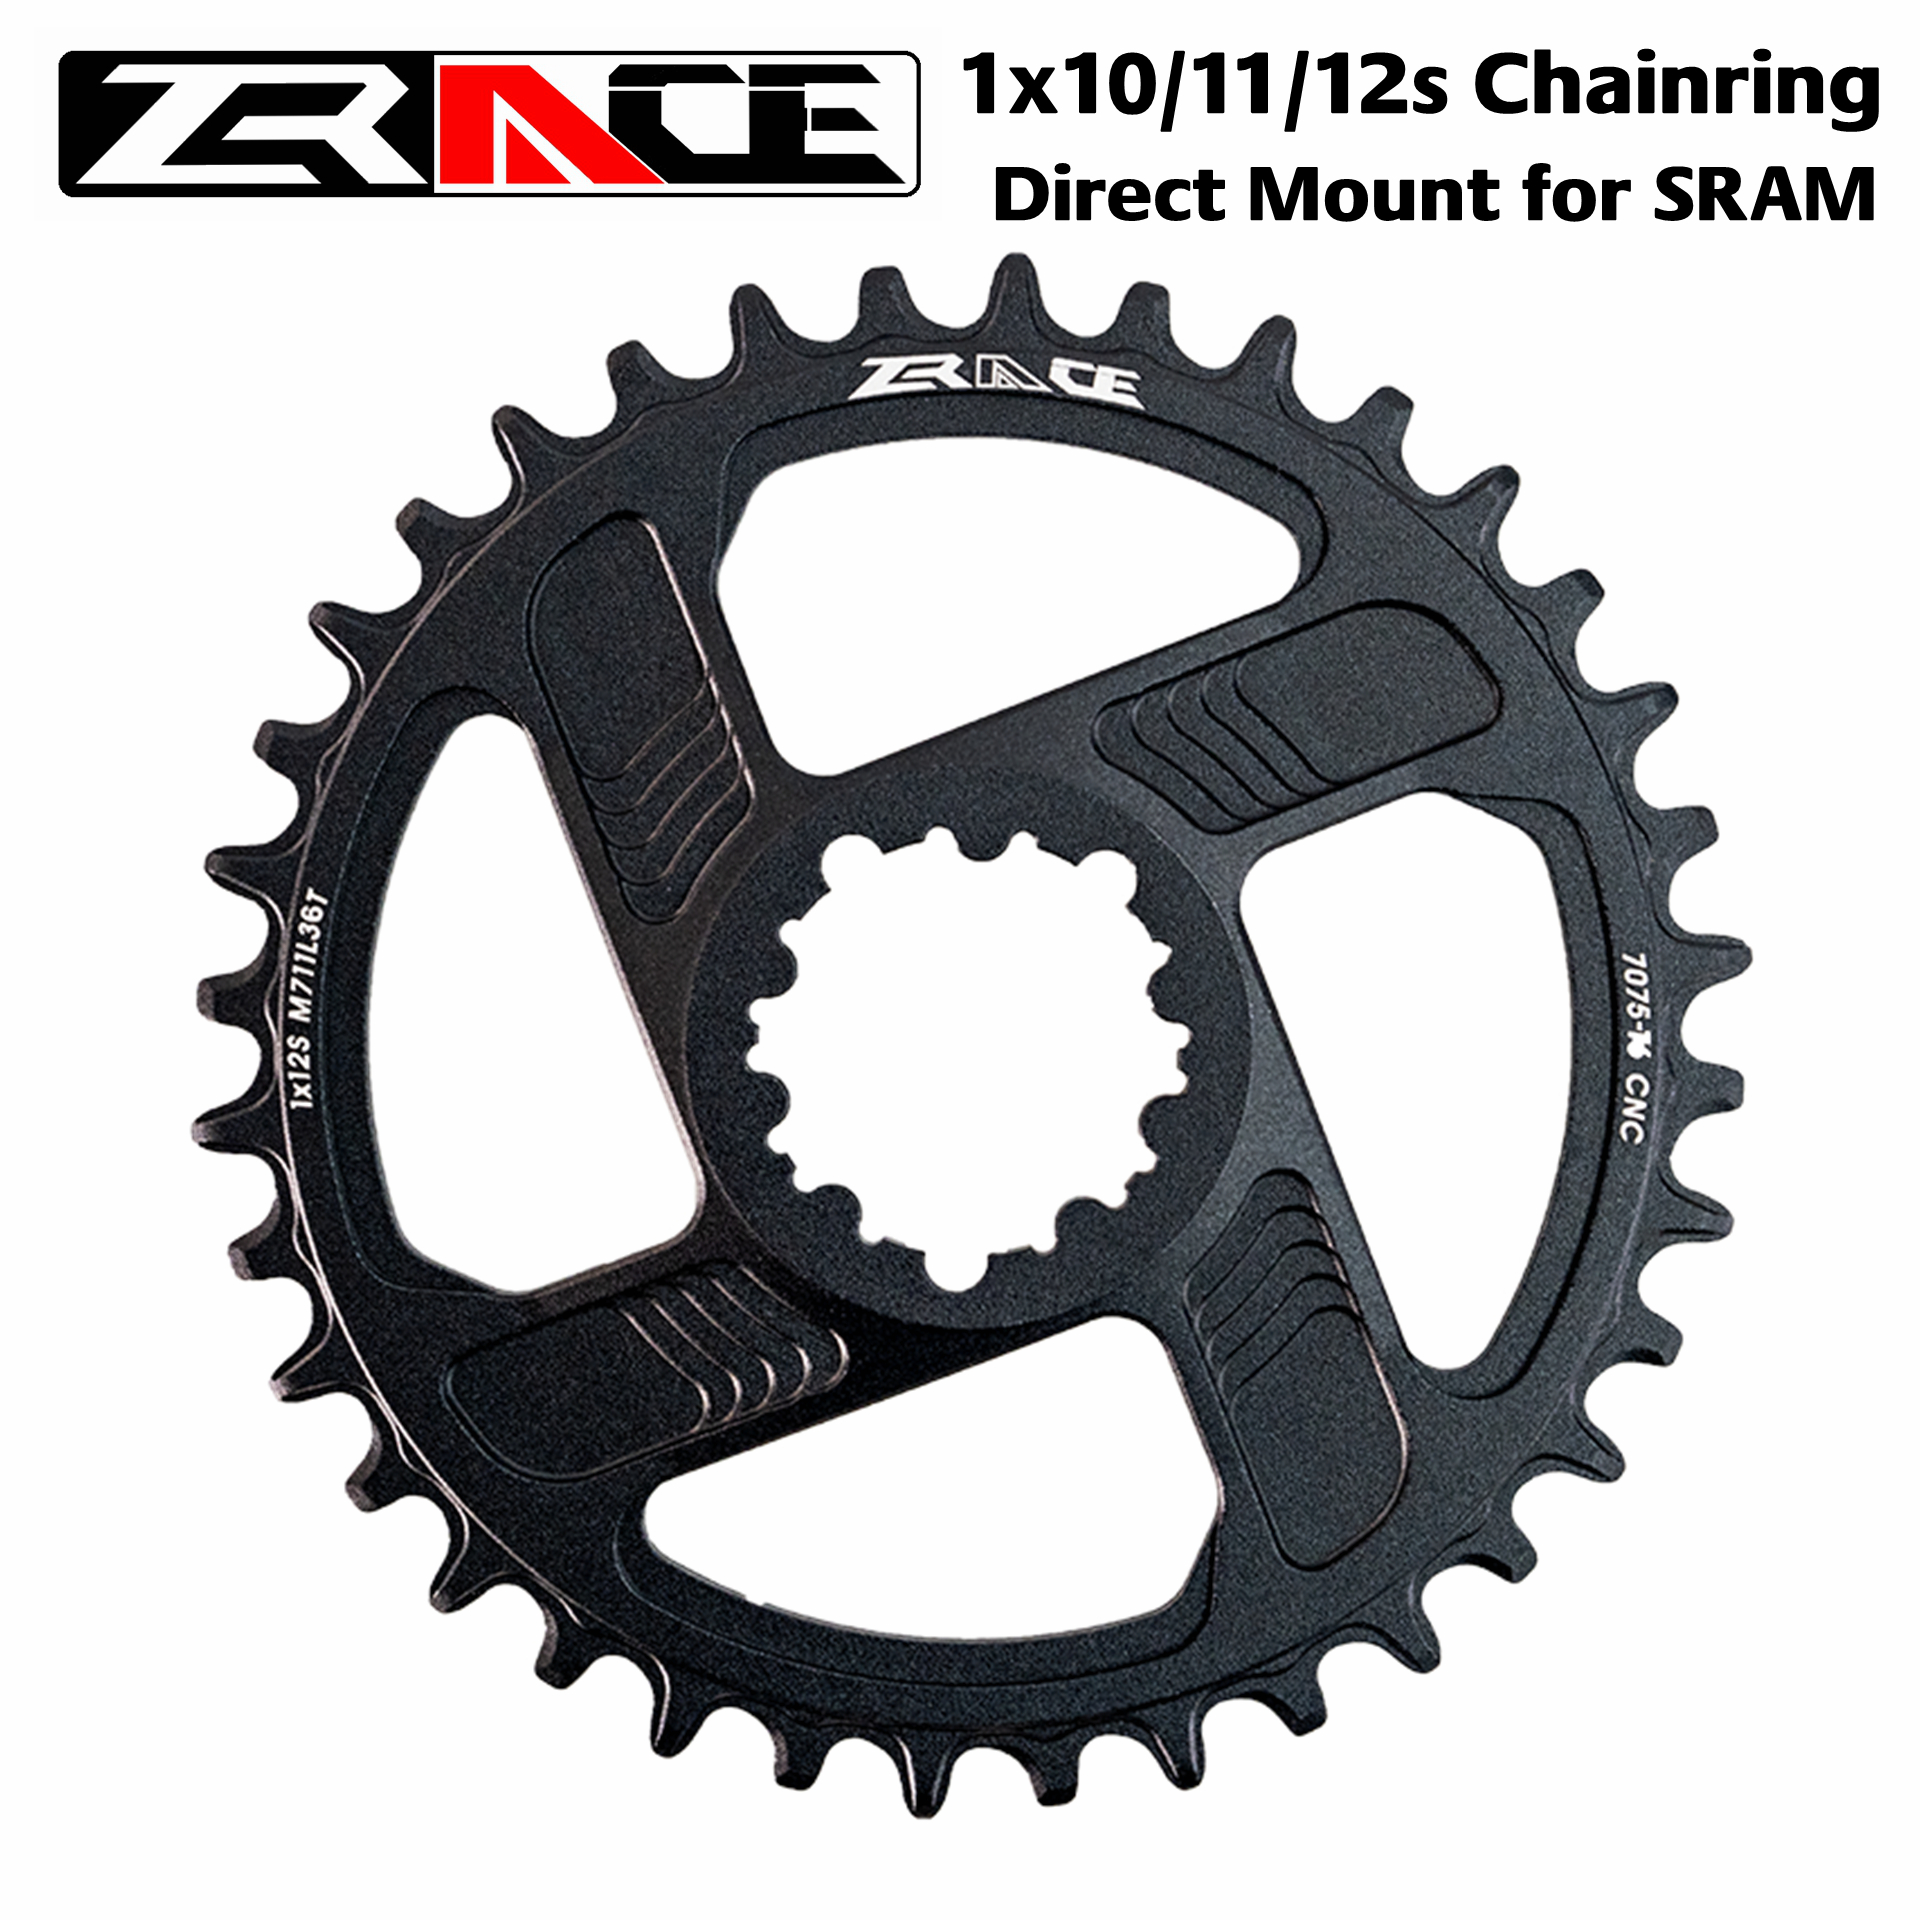 ZRACE 1 x 10s / 11s / 12s Chainrings, 7075AL Vickers-hardness 21, offset 6mm,Narrow Wide MTB Chainwheel, SRAM Direct Mount Crank image